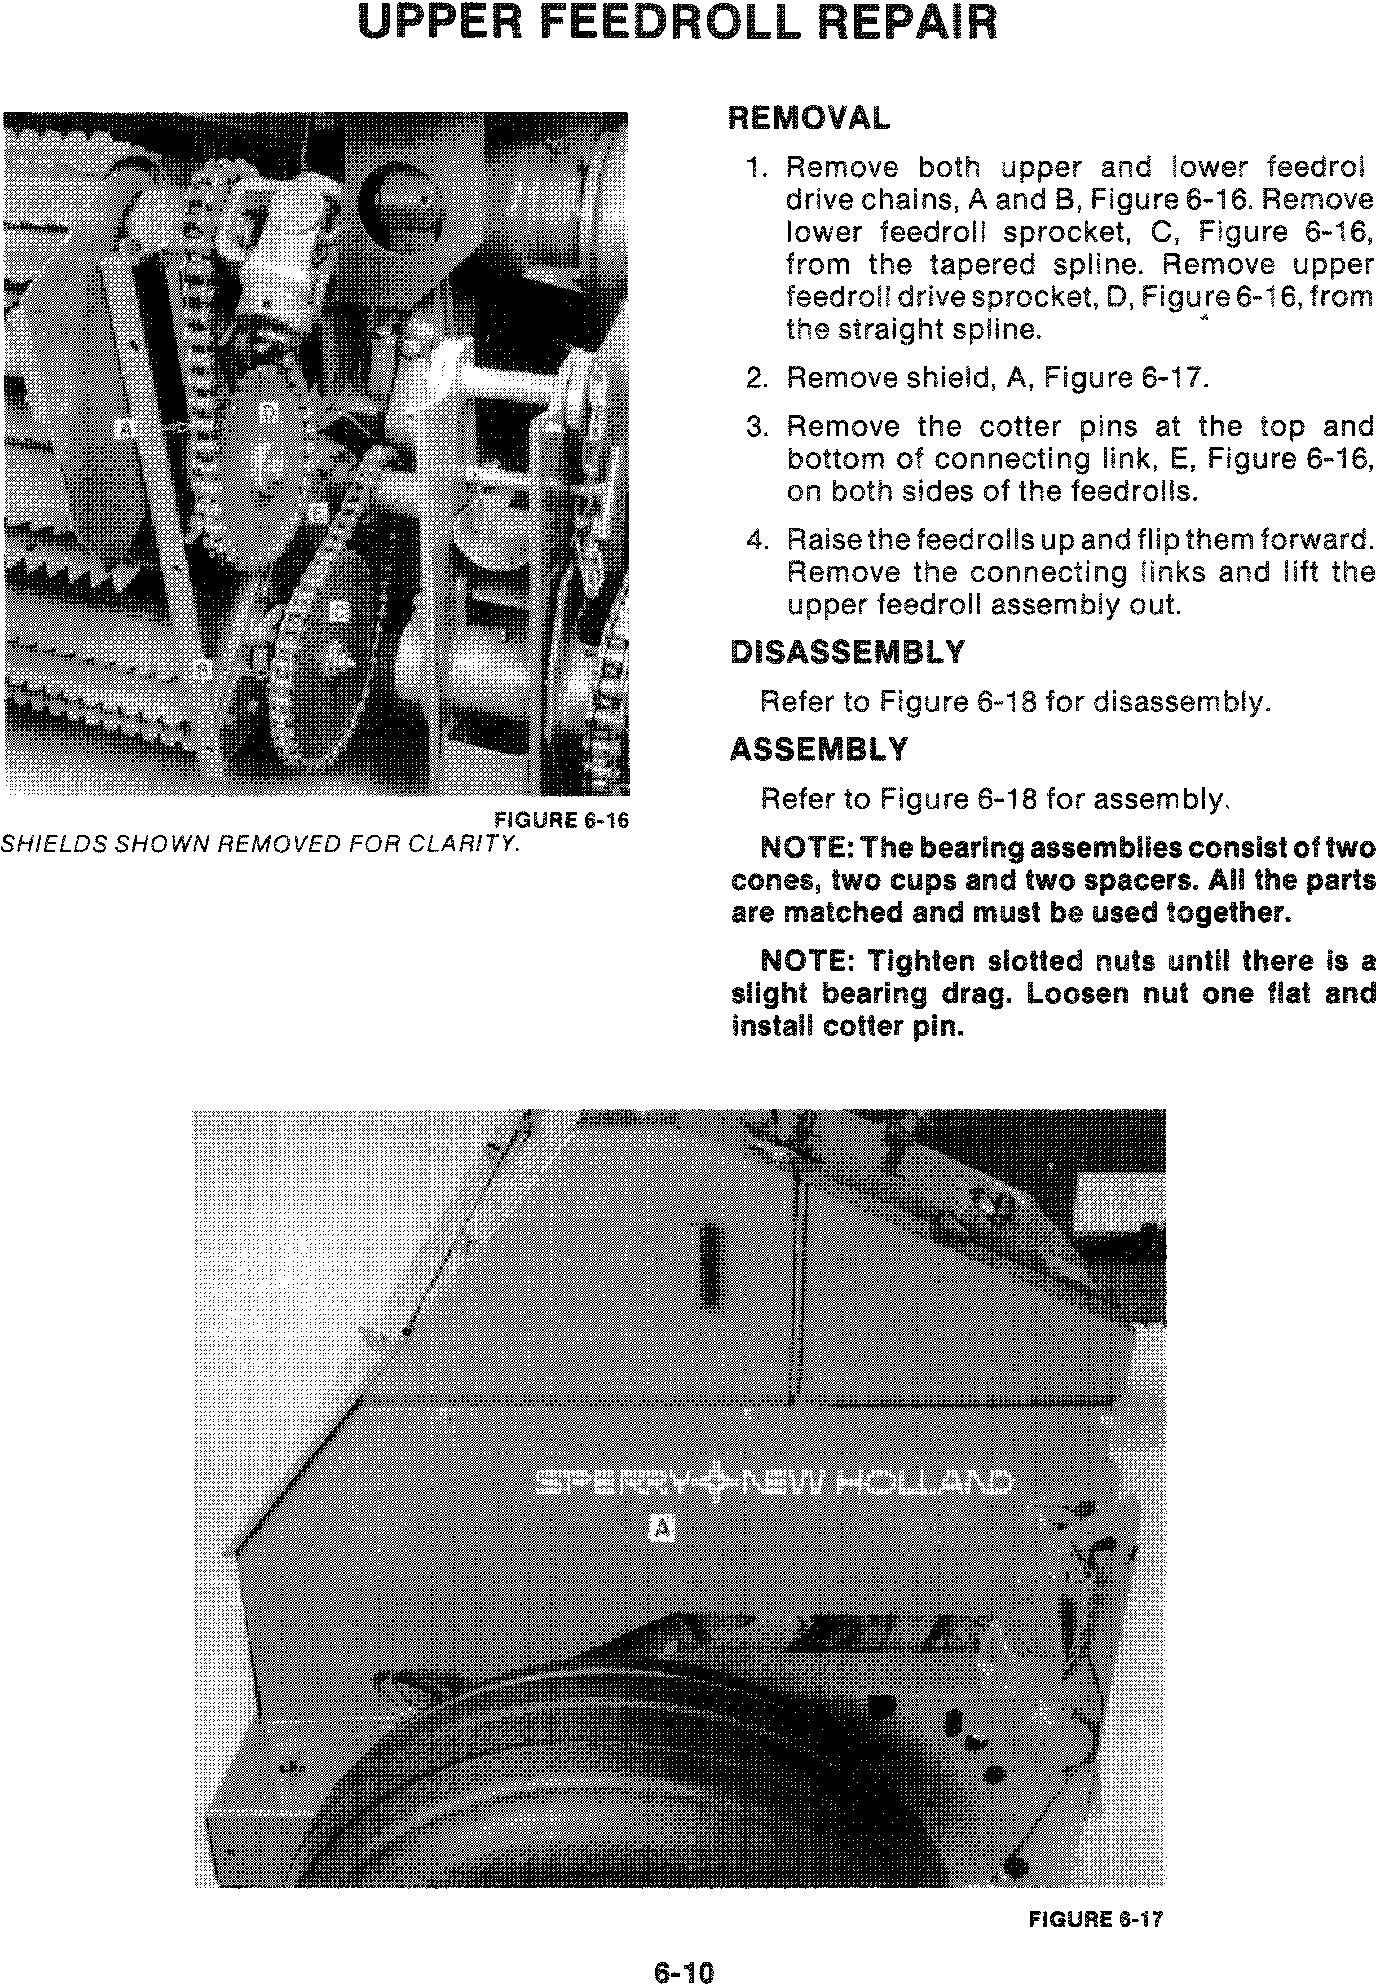 New Holland 1600 Forage Harvester Service Manual - 3